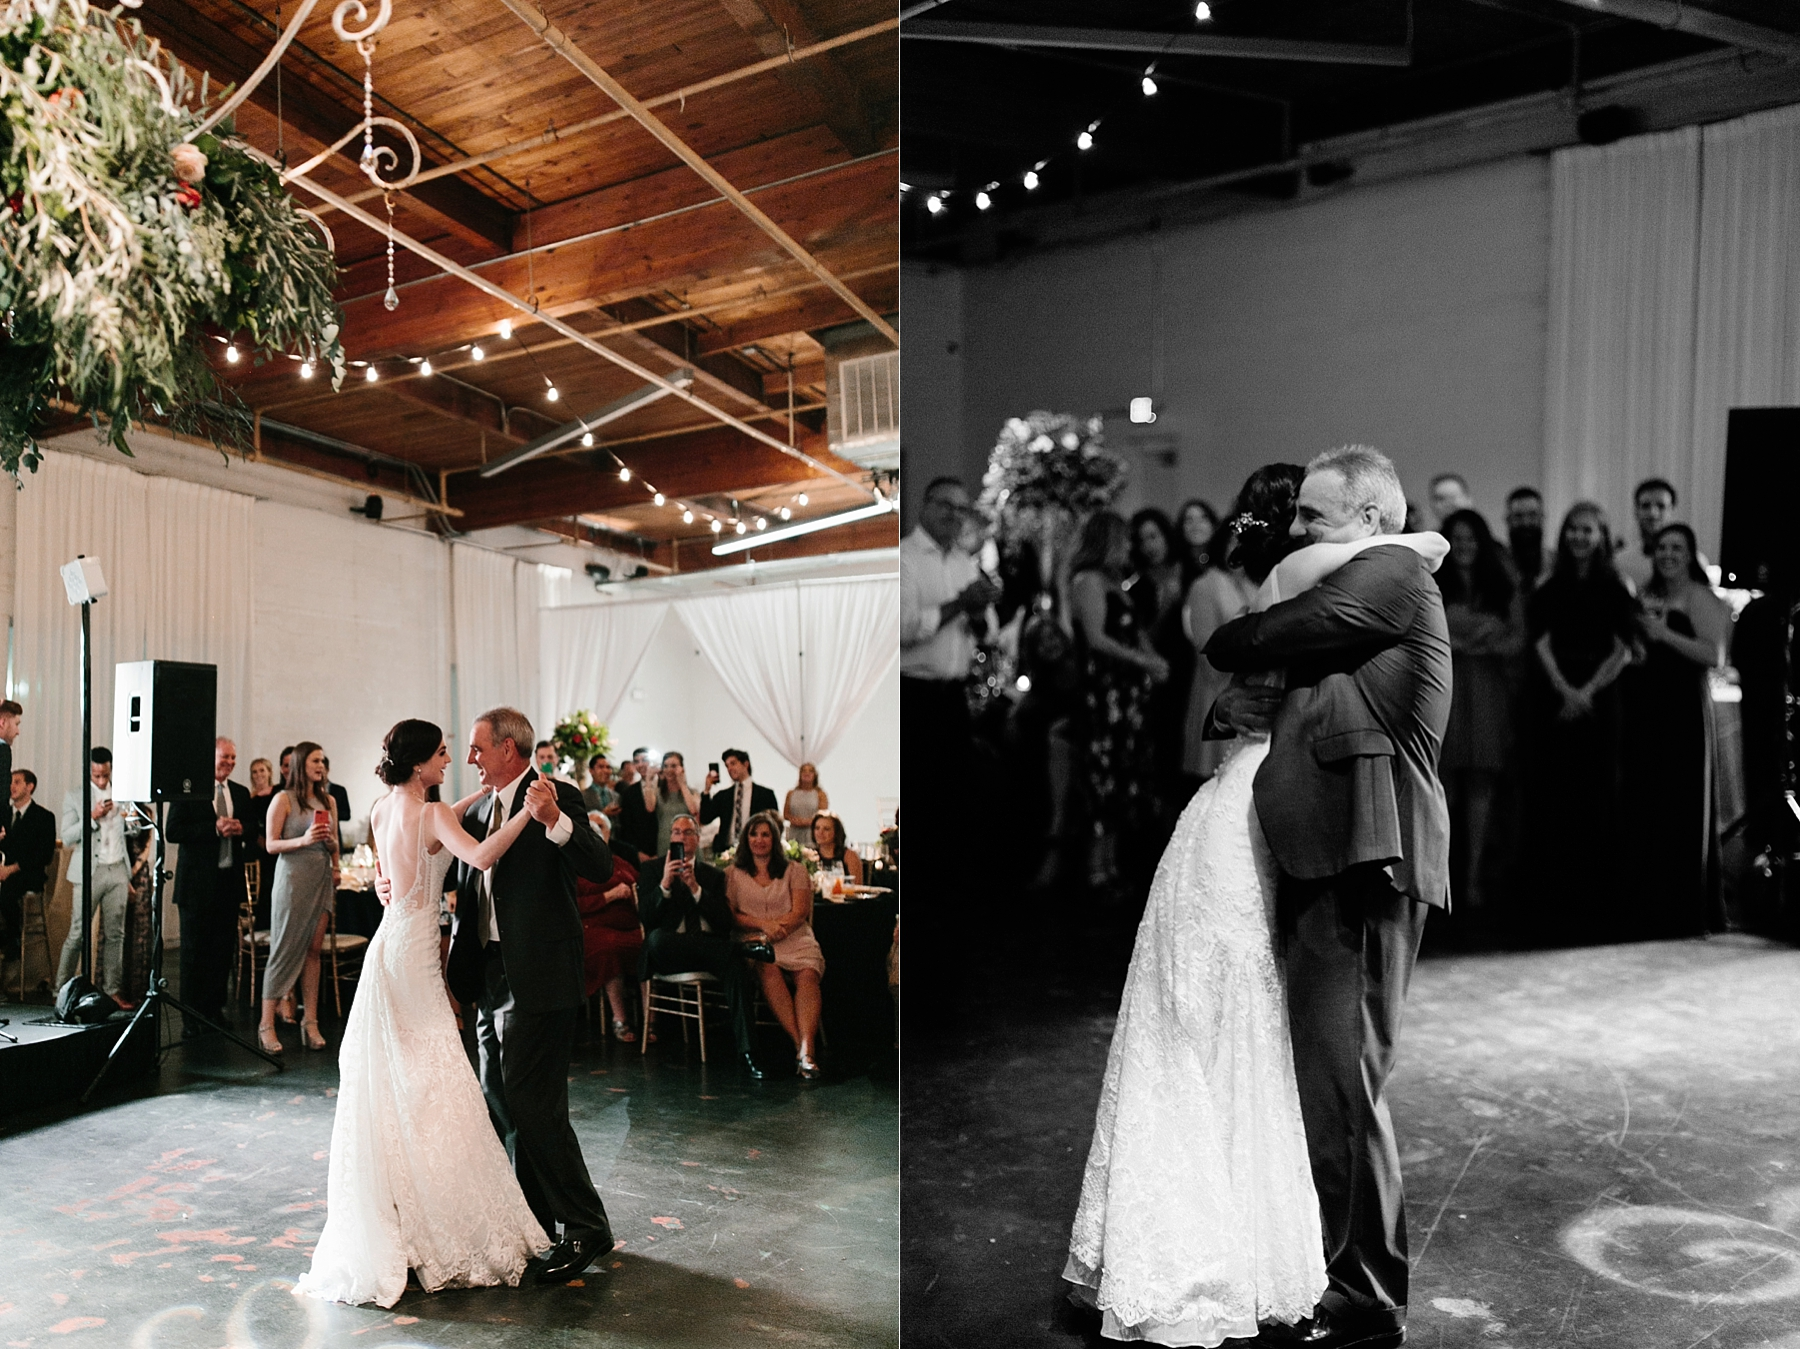 Emily + Caleb _ an elegant, intentional, industrial style wedding with navy + gold accents at 6500 in Dallas, TX by North Texas Wedding Photographer Rachel Meagan Photography _ 147